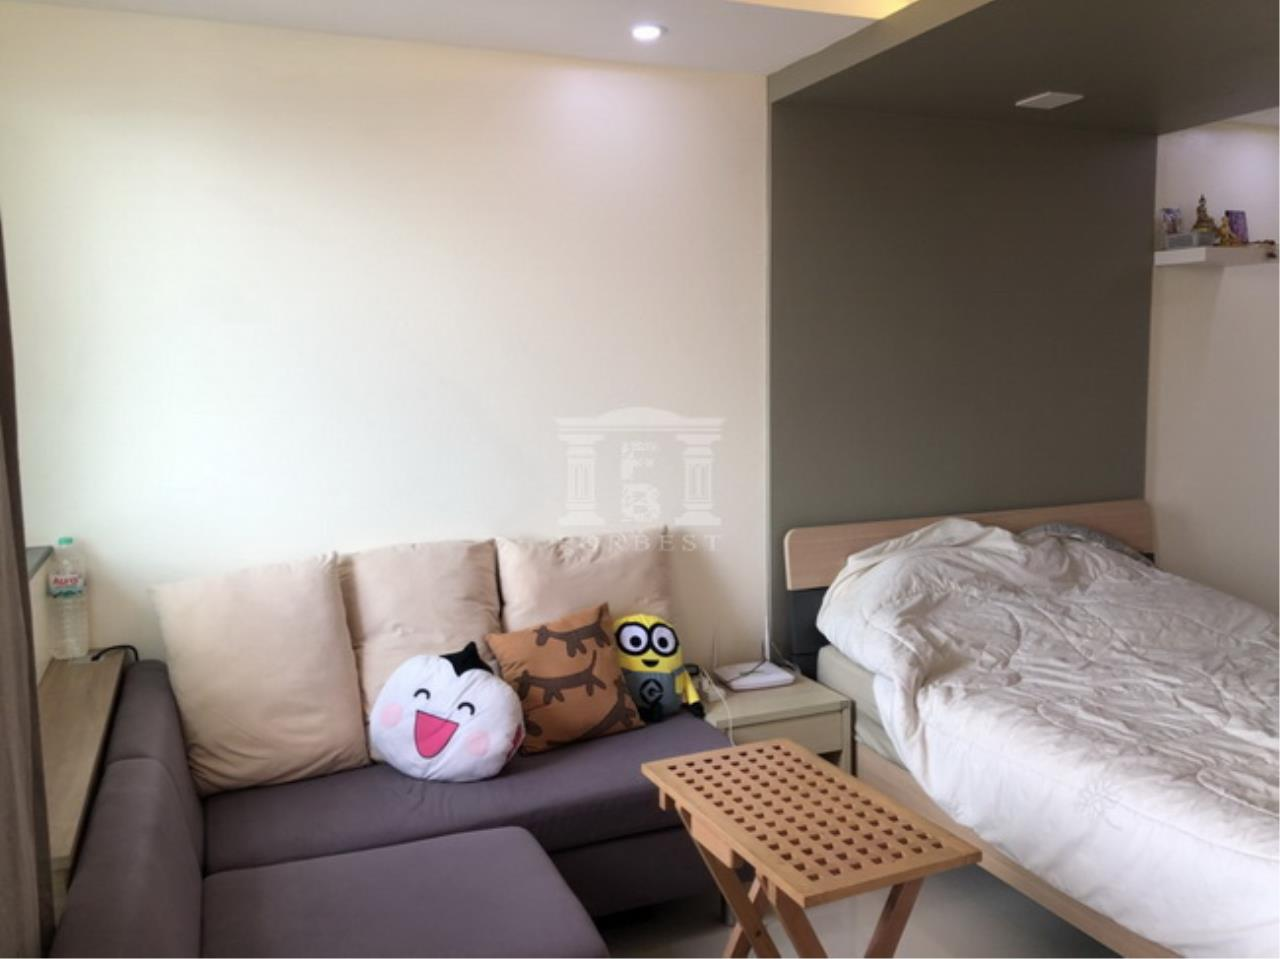 Forbest Properties Agency's 38326 - SUPALAI ORIENTAL PLACE SATHORN-SUANPLU 8 LIVING SPACE 40 SQ.M. 3